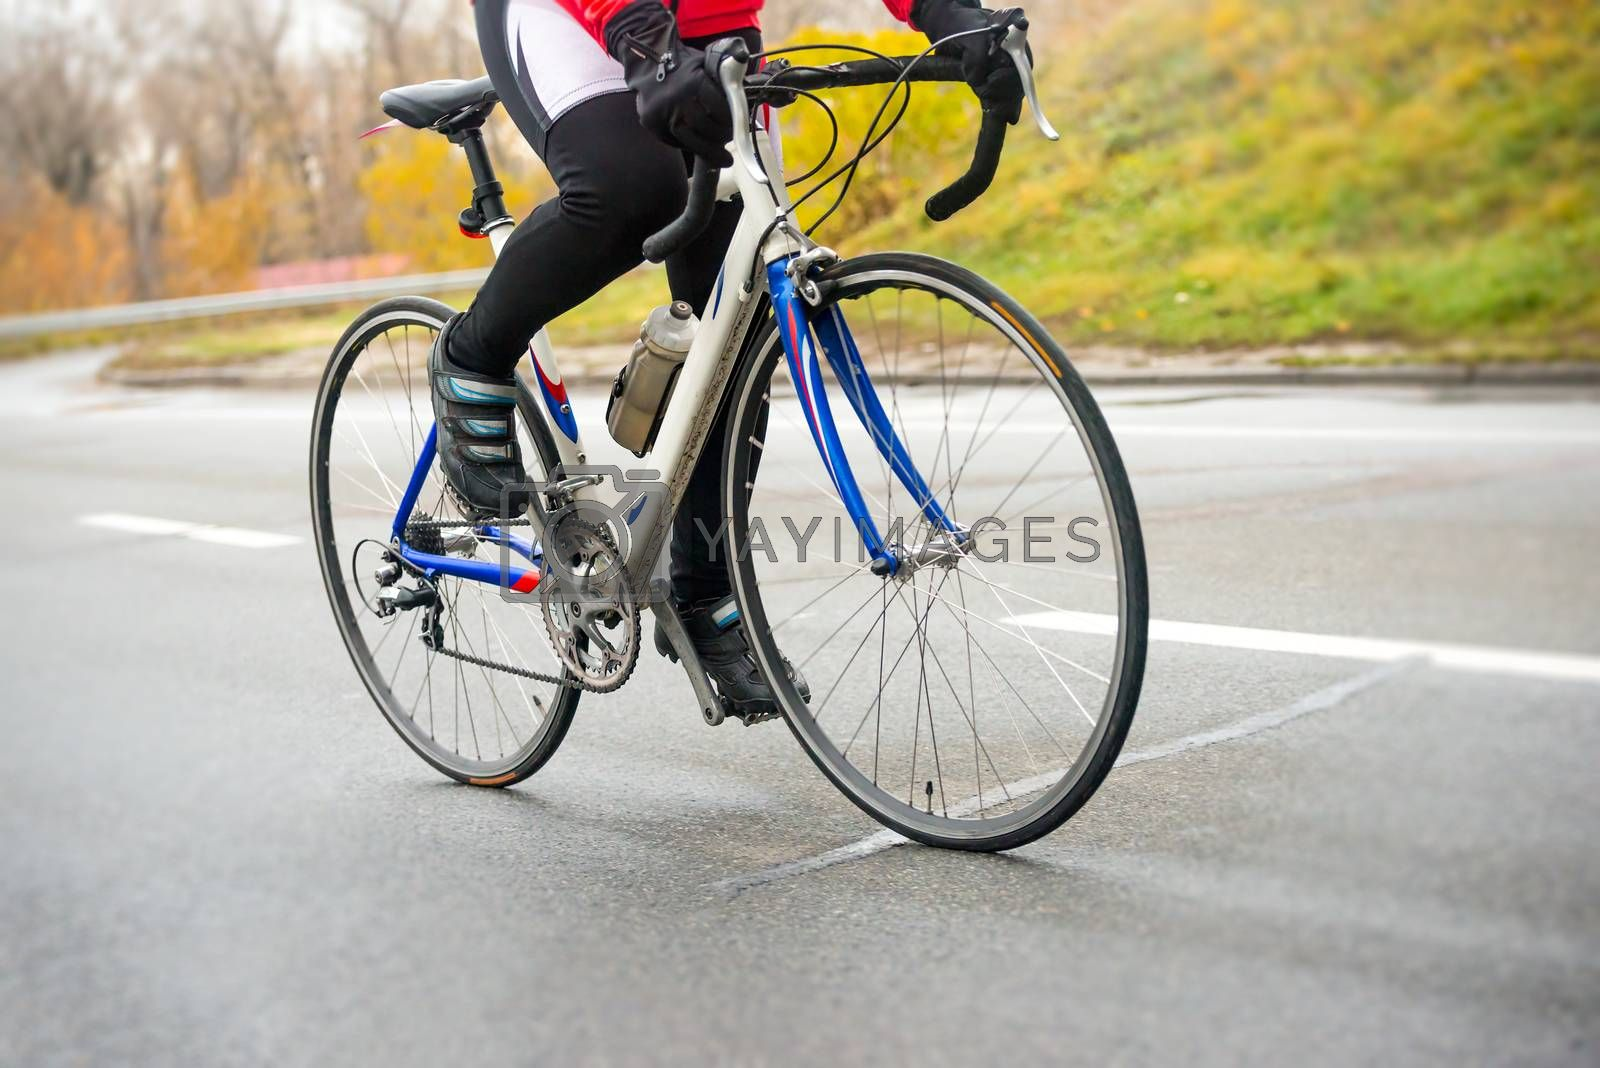 Young Woman Riding Road Bicycle on the Highway in the Cold Autumn Day. Healthy Lifestyle Concept.